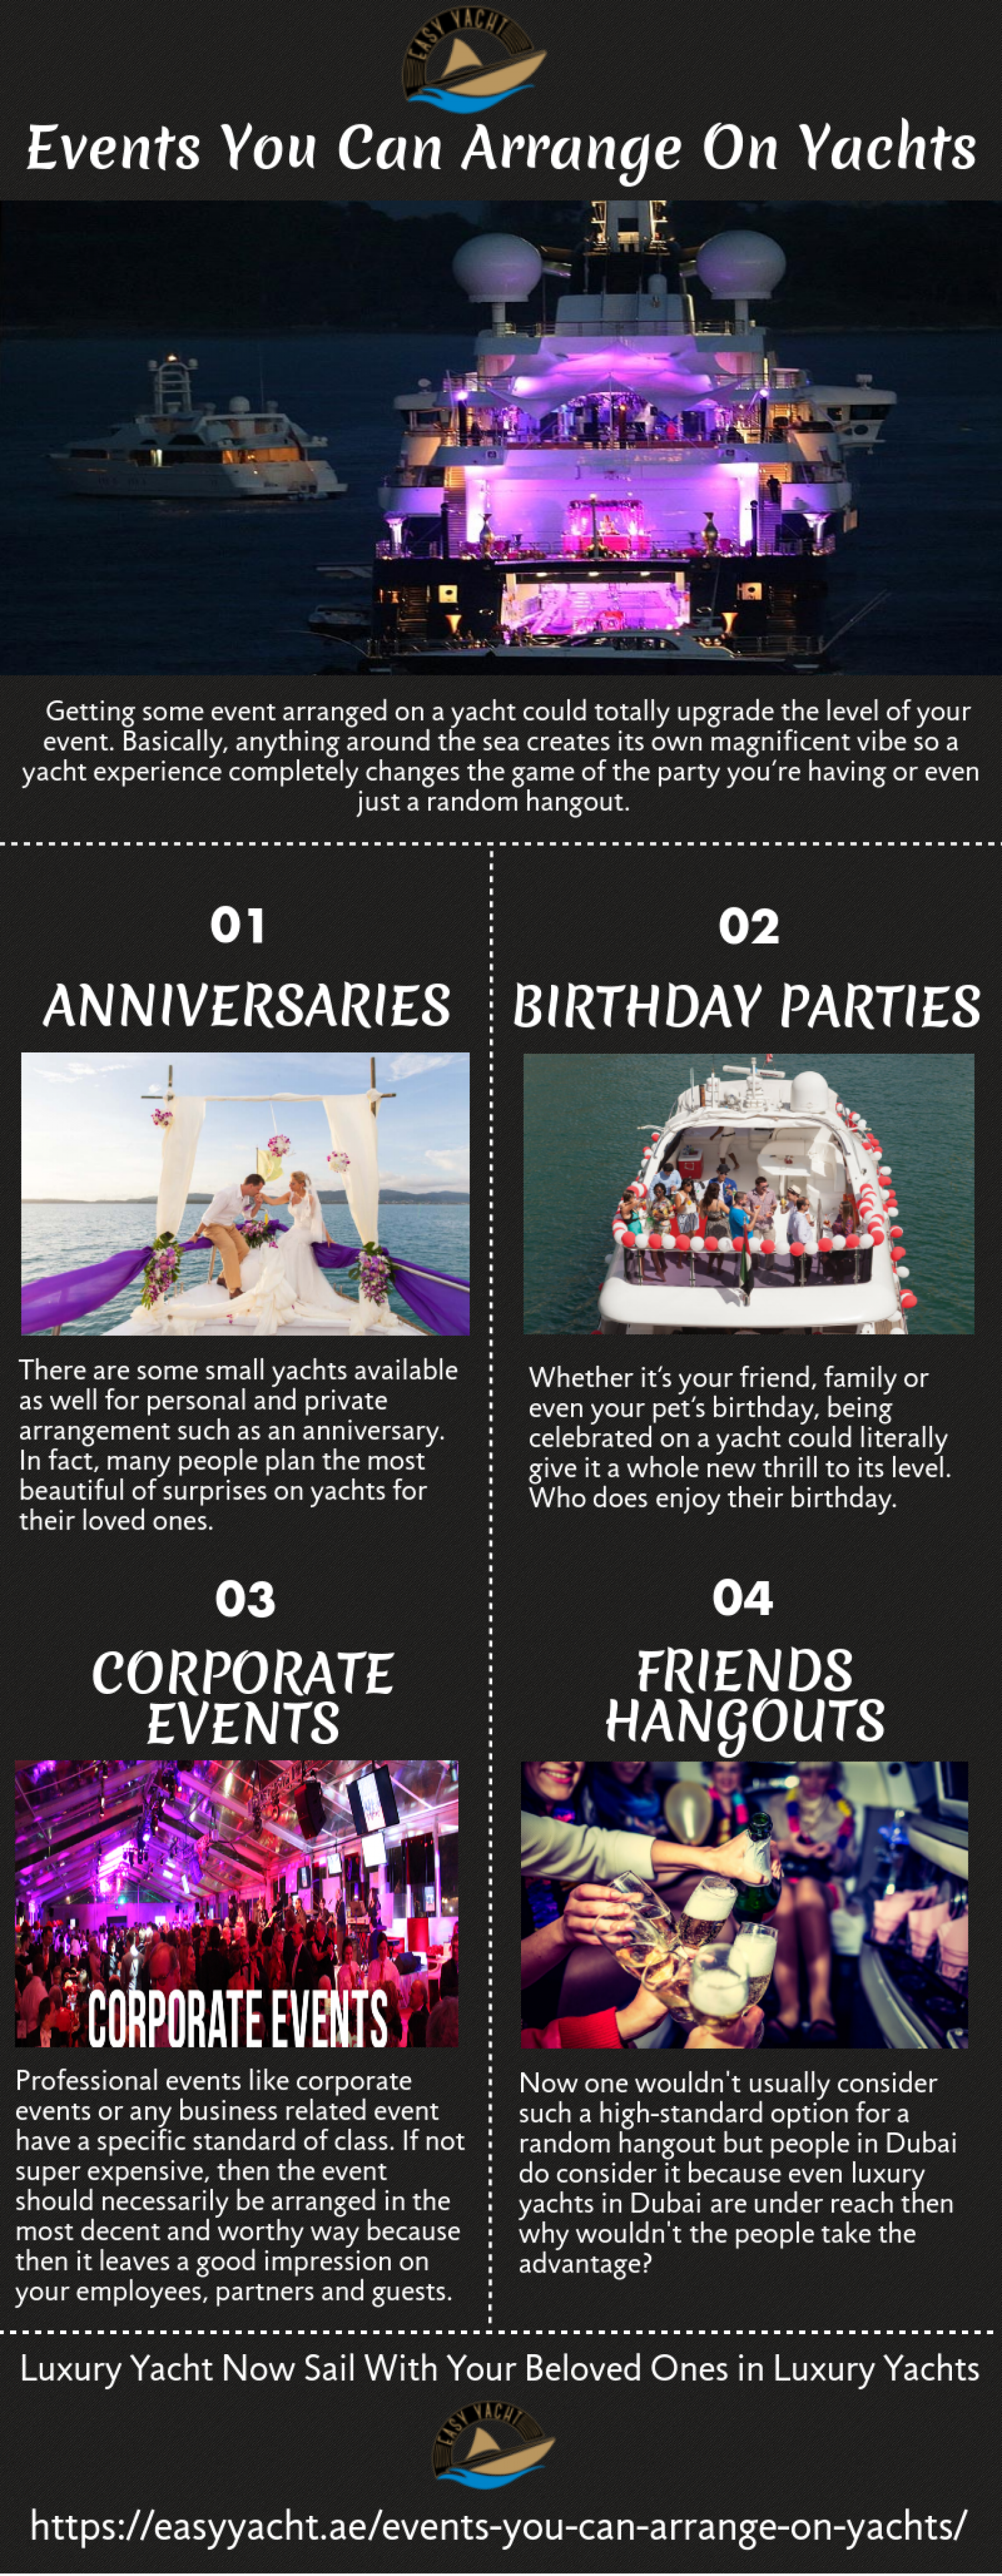 Event You Can Arrange on Yachts